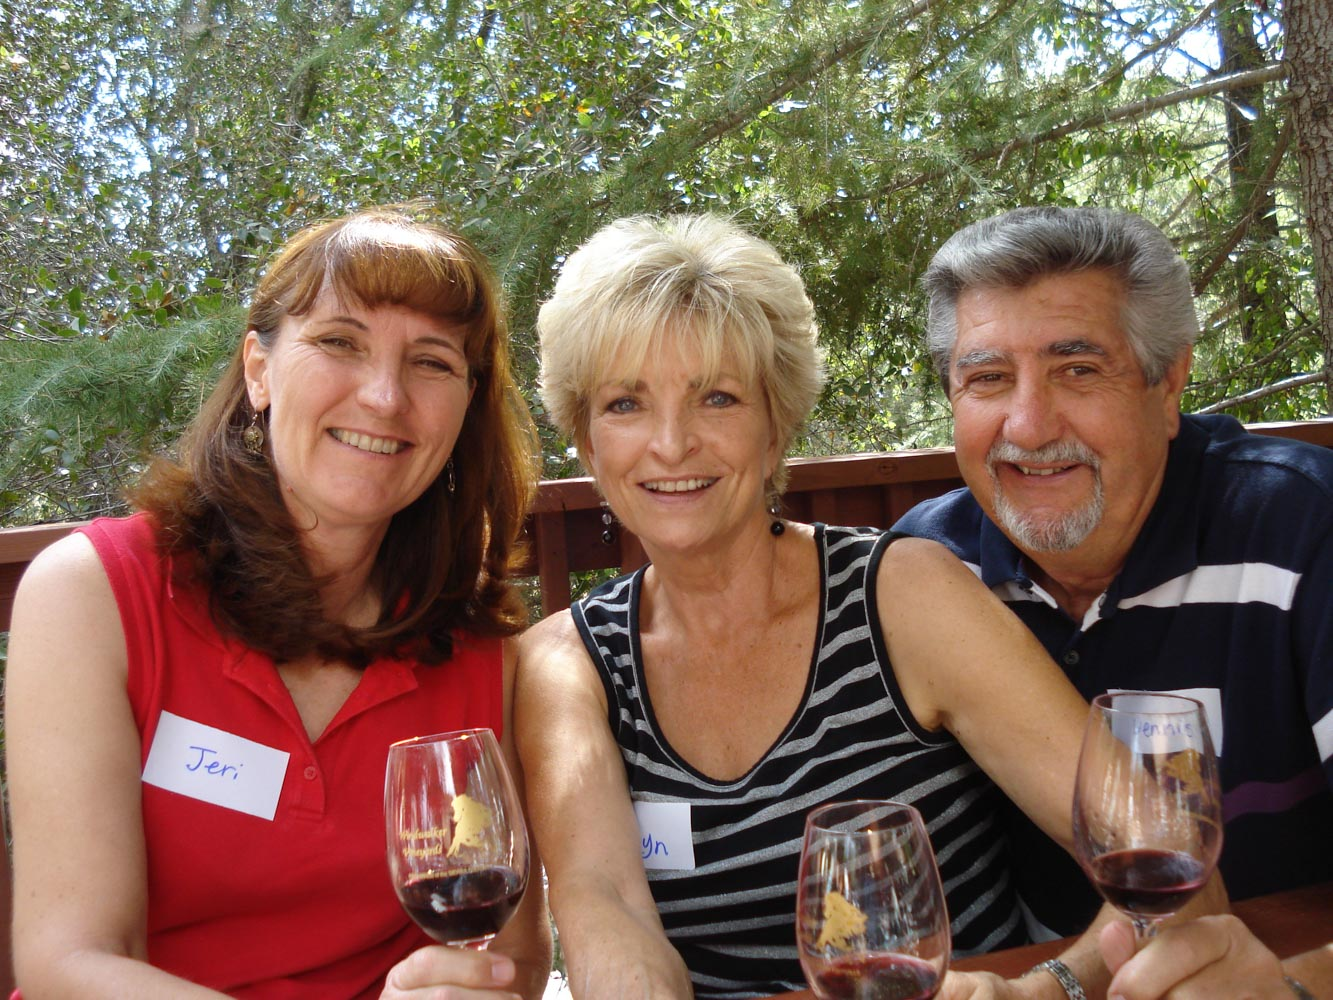 Close-up portrait of two women and one man, all smiling and holding a glass of red wine.